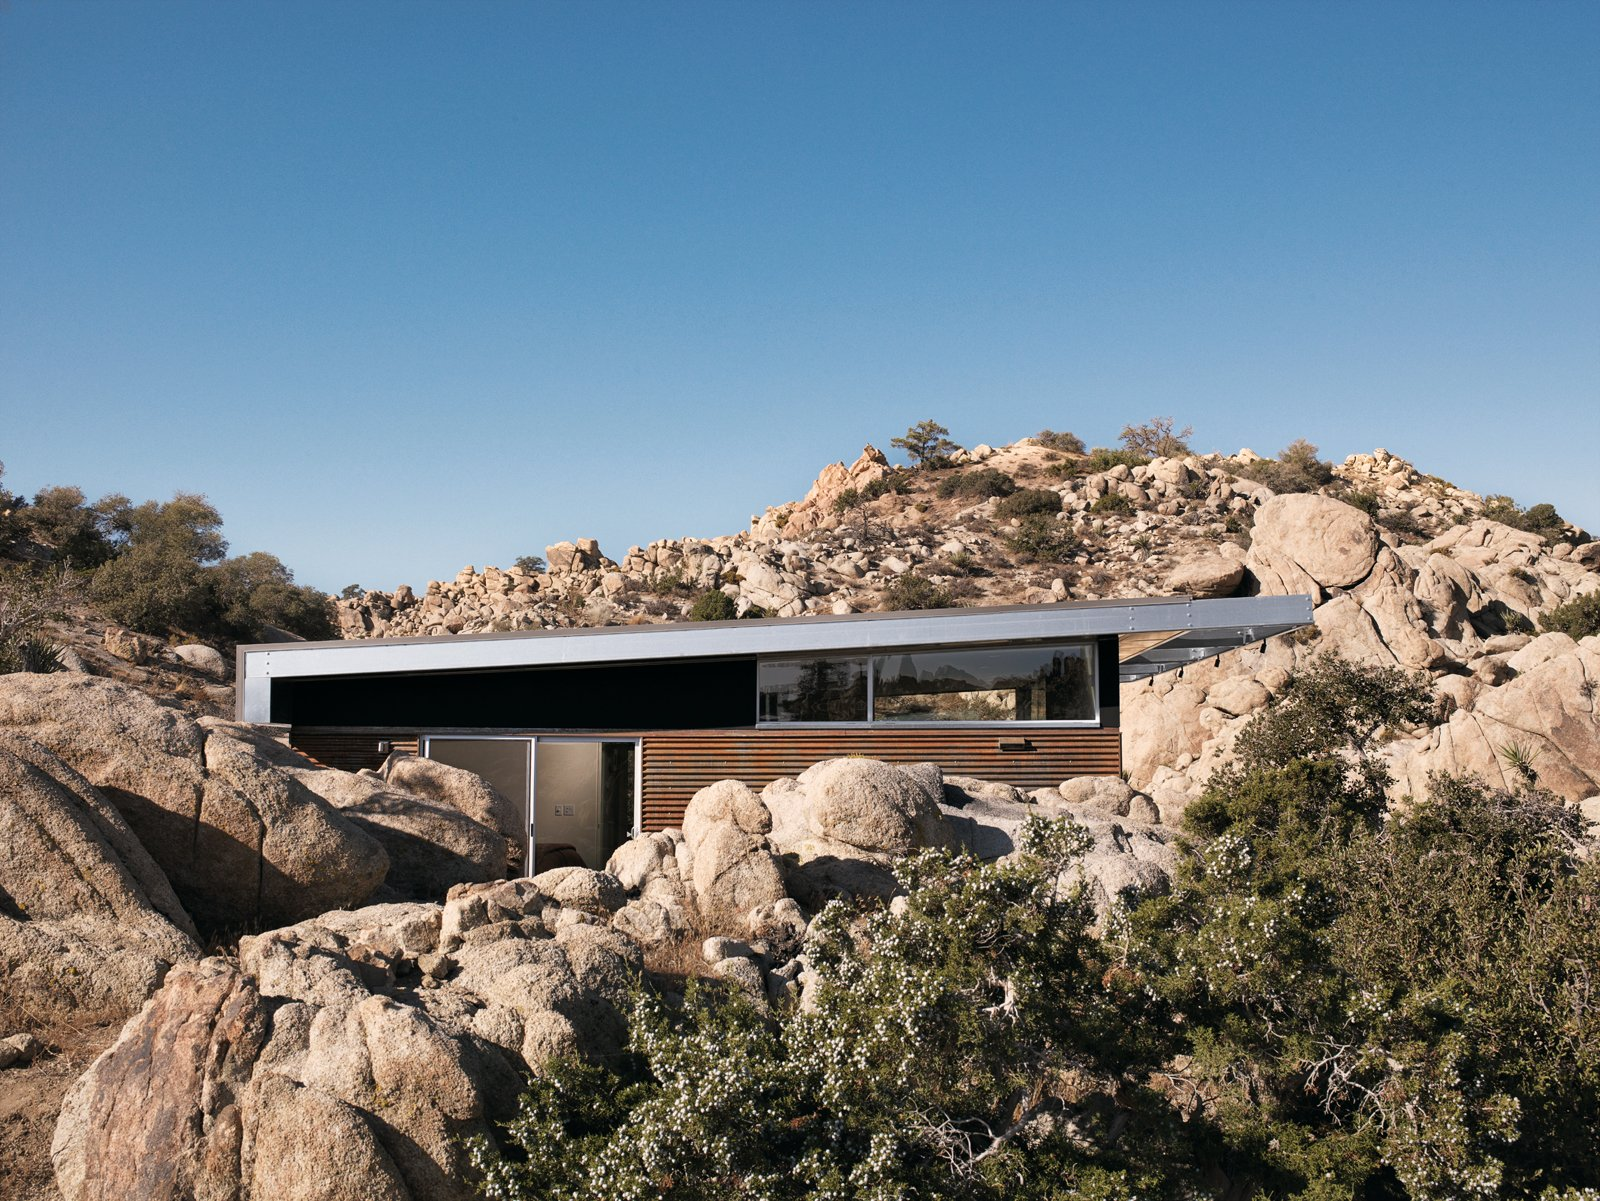 "For all its hard environmental work, one of the most immediate of the Blue Sky Home's pleasures is how it sits so snugly in its desert surroundings. Tagged: Outdoor, Desert, Boulders, Trees, and Shrubs.  Off the grid by Michela O'Connor Abrams from Small ""Hybrid Prefab"" Home in the Desert"